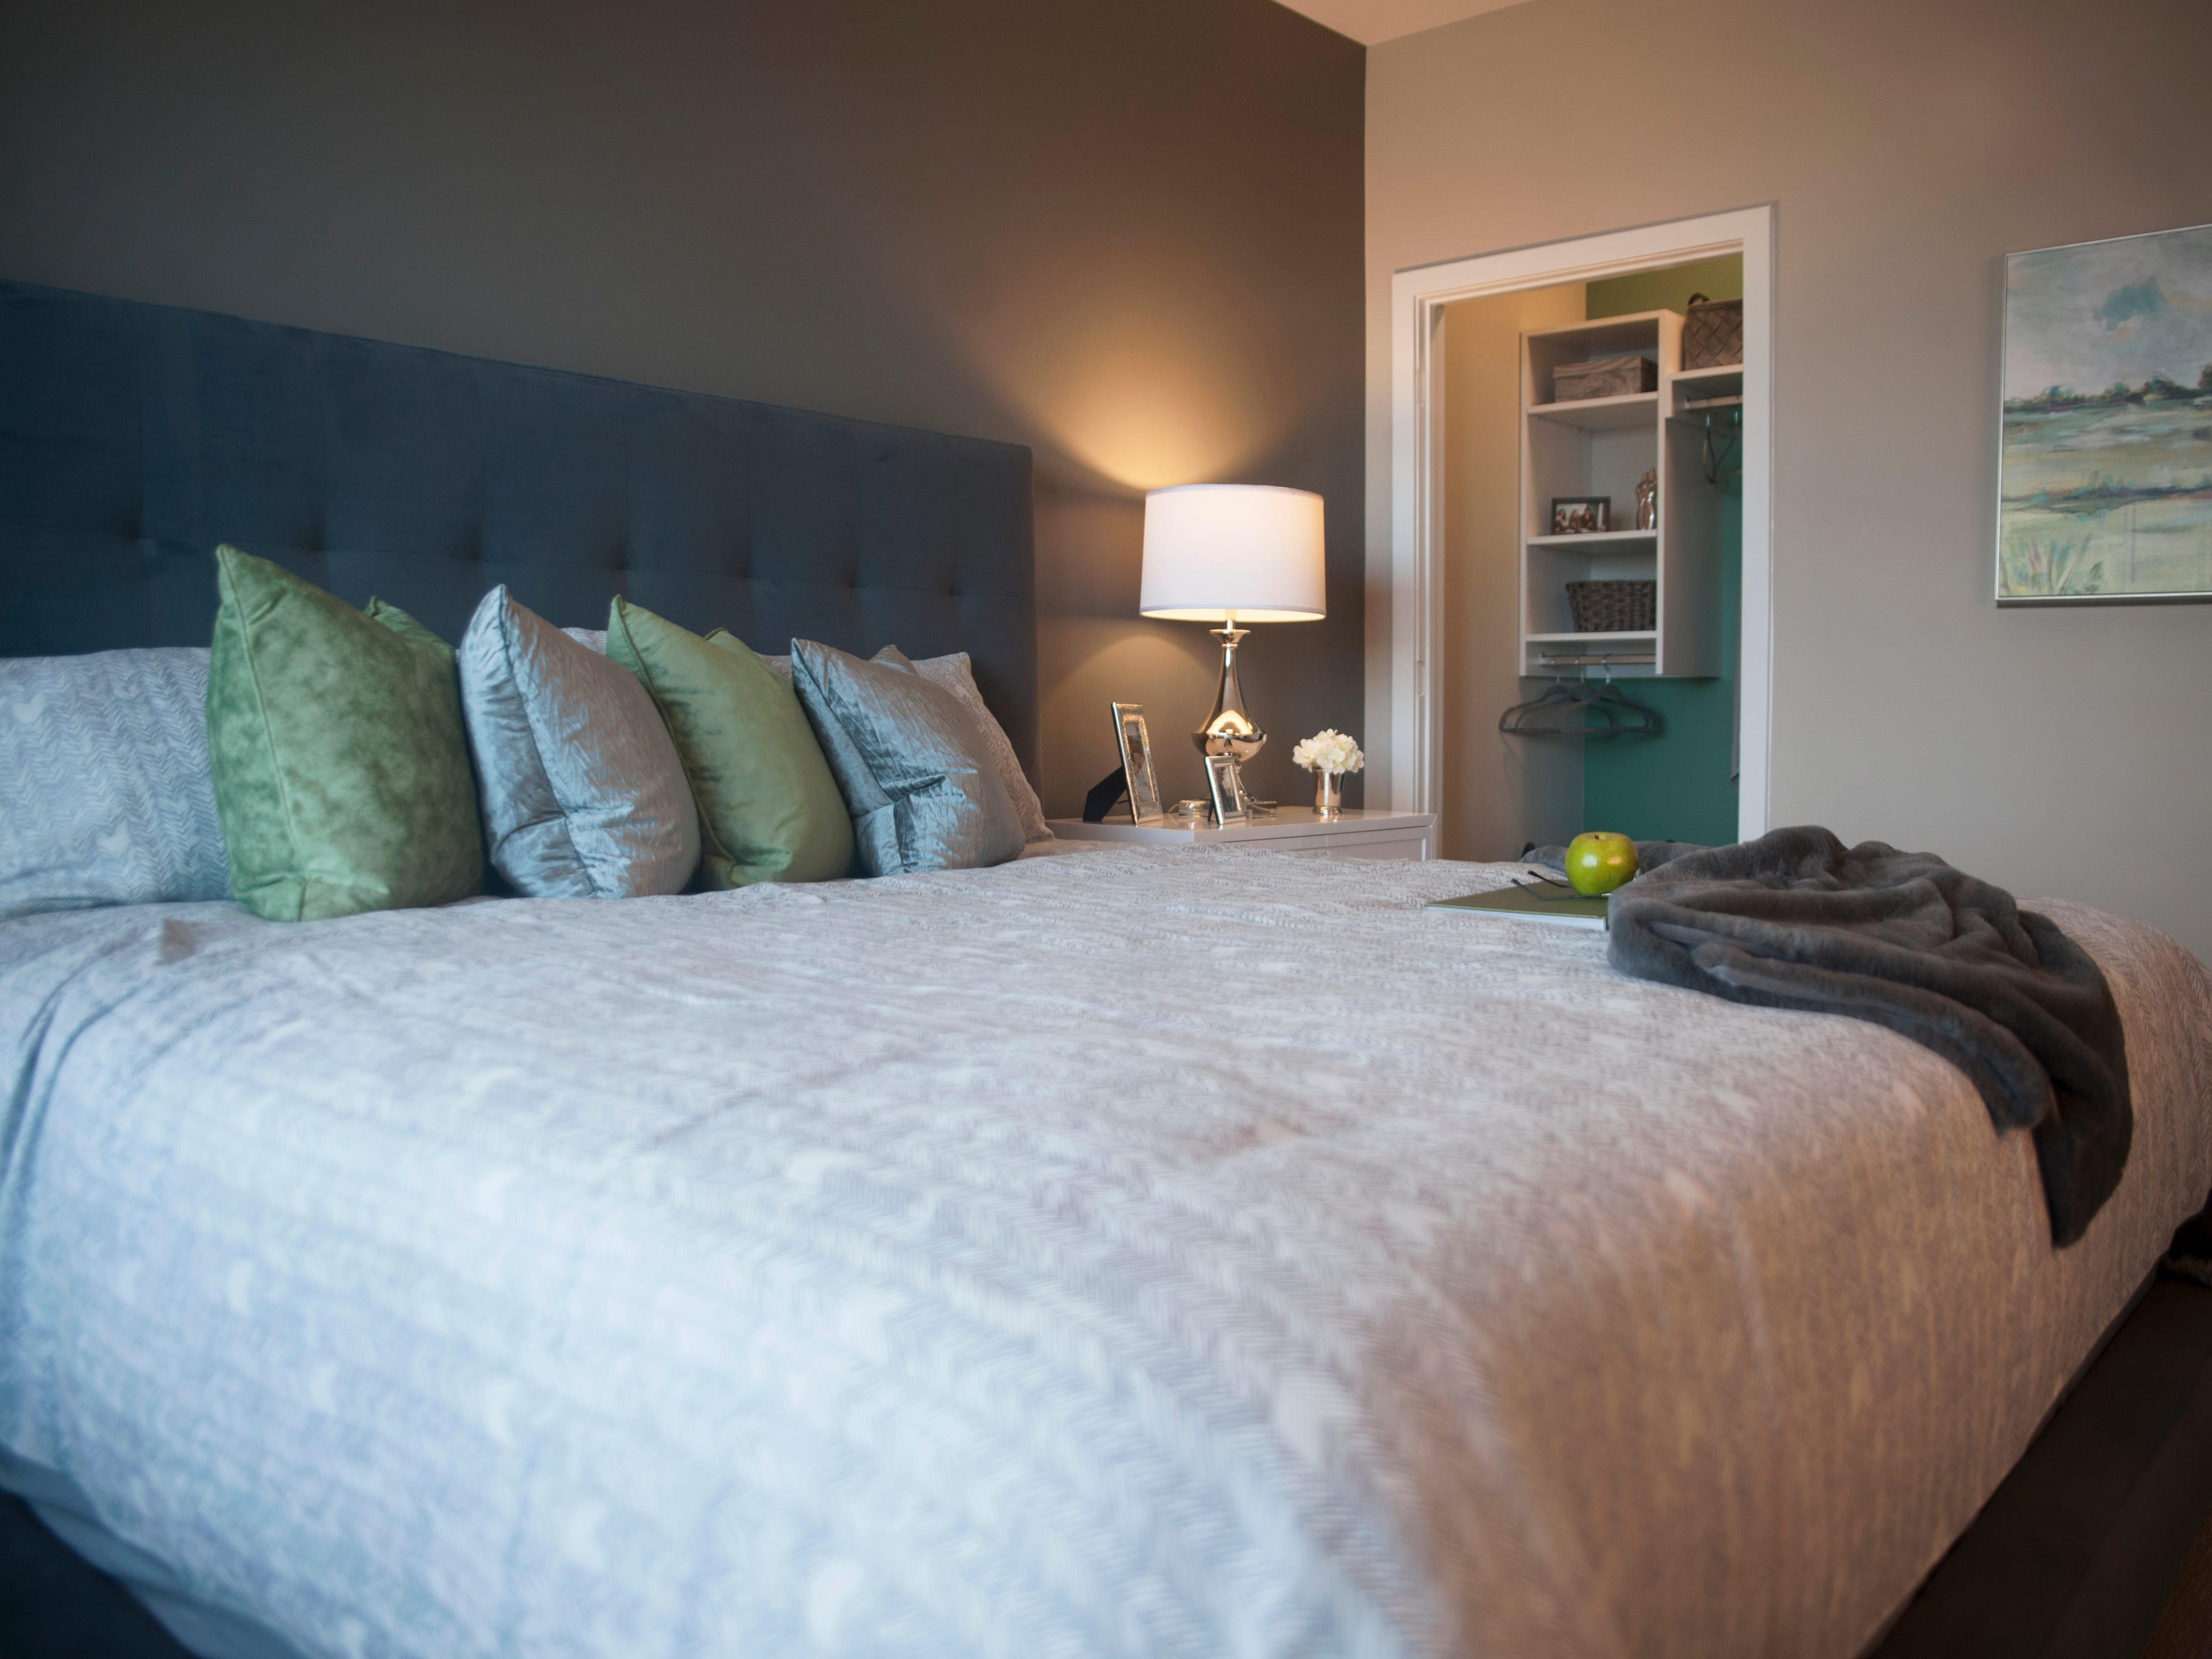 A view of a bedroom room of a model apartment at Haddon Point, a large-scale apartment complex located on the former Pennsauken Mart site, that opened Wednesday, November 14, 2018.